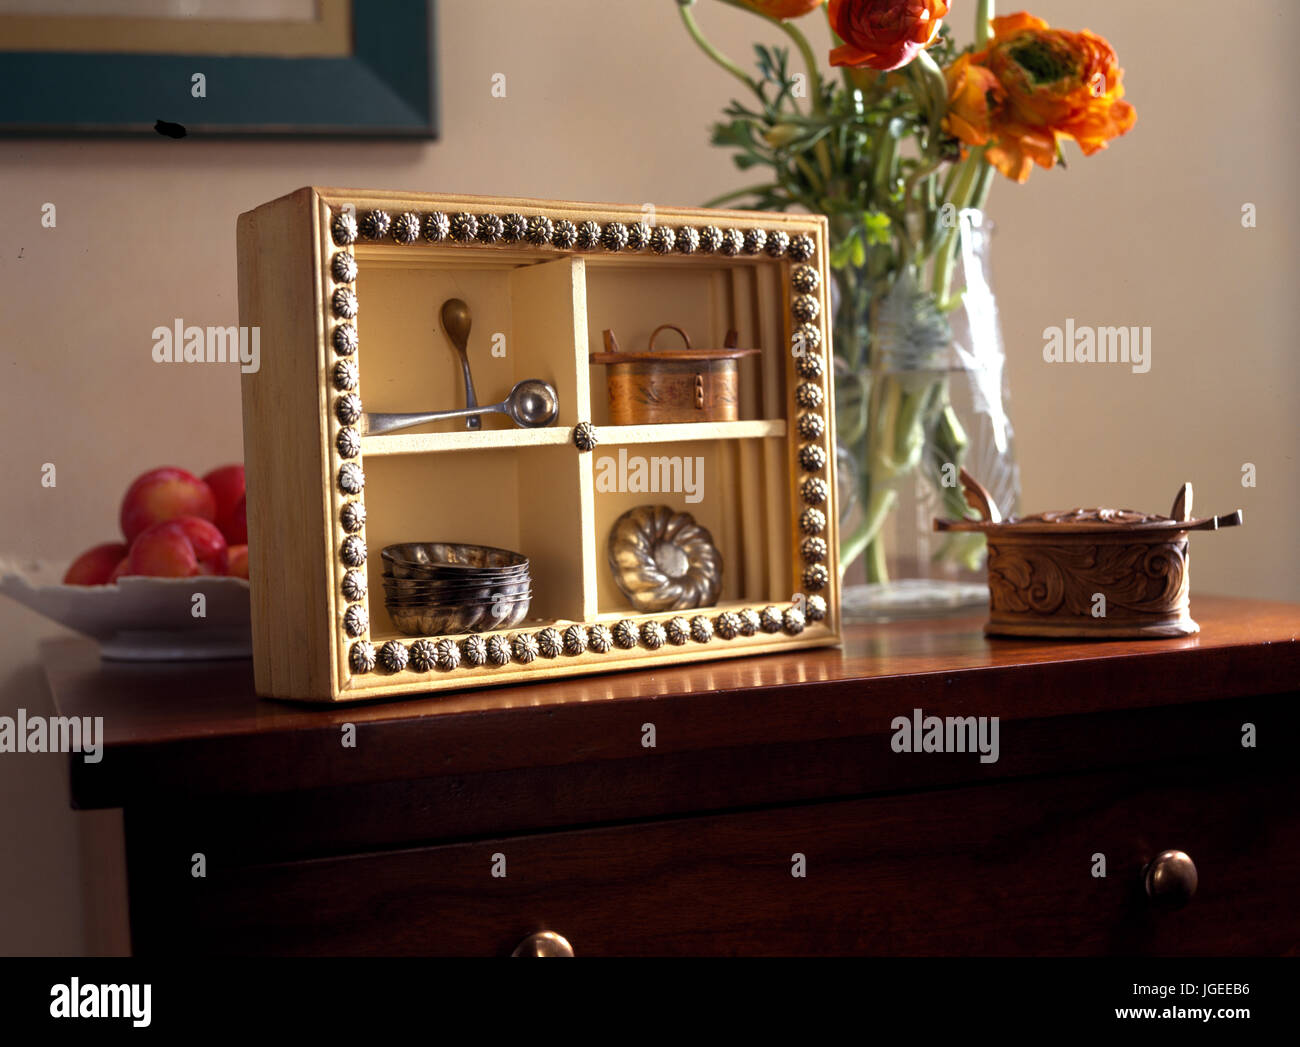 Box frame with treasured objects - Stock Image